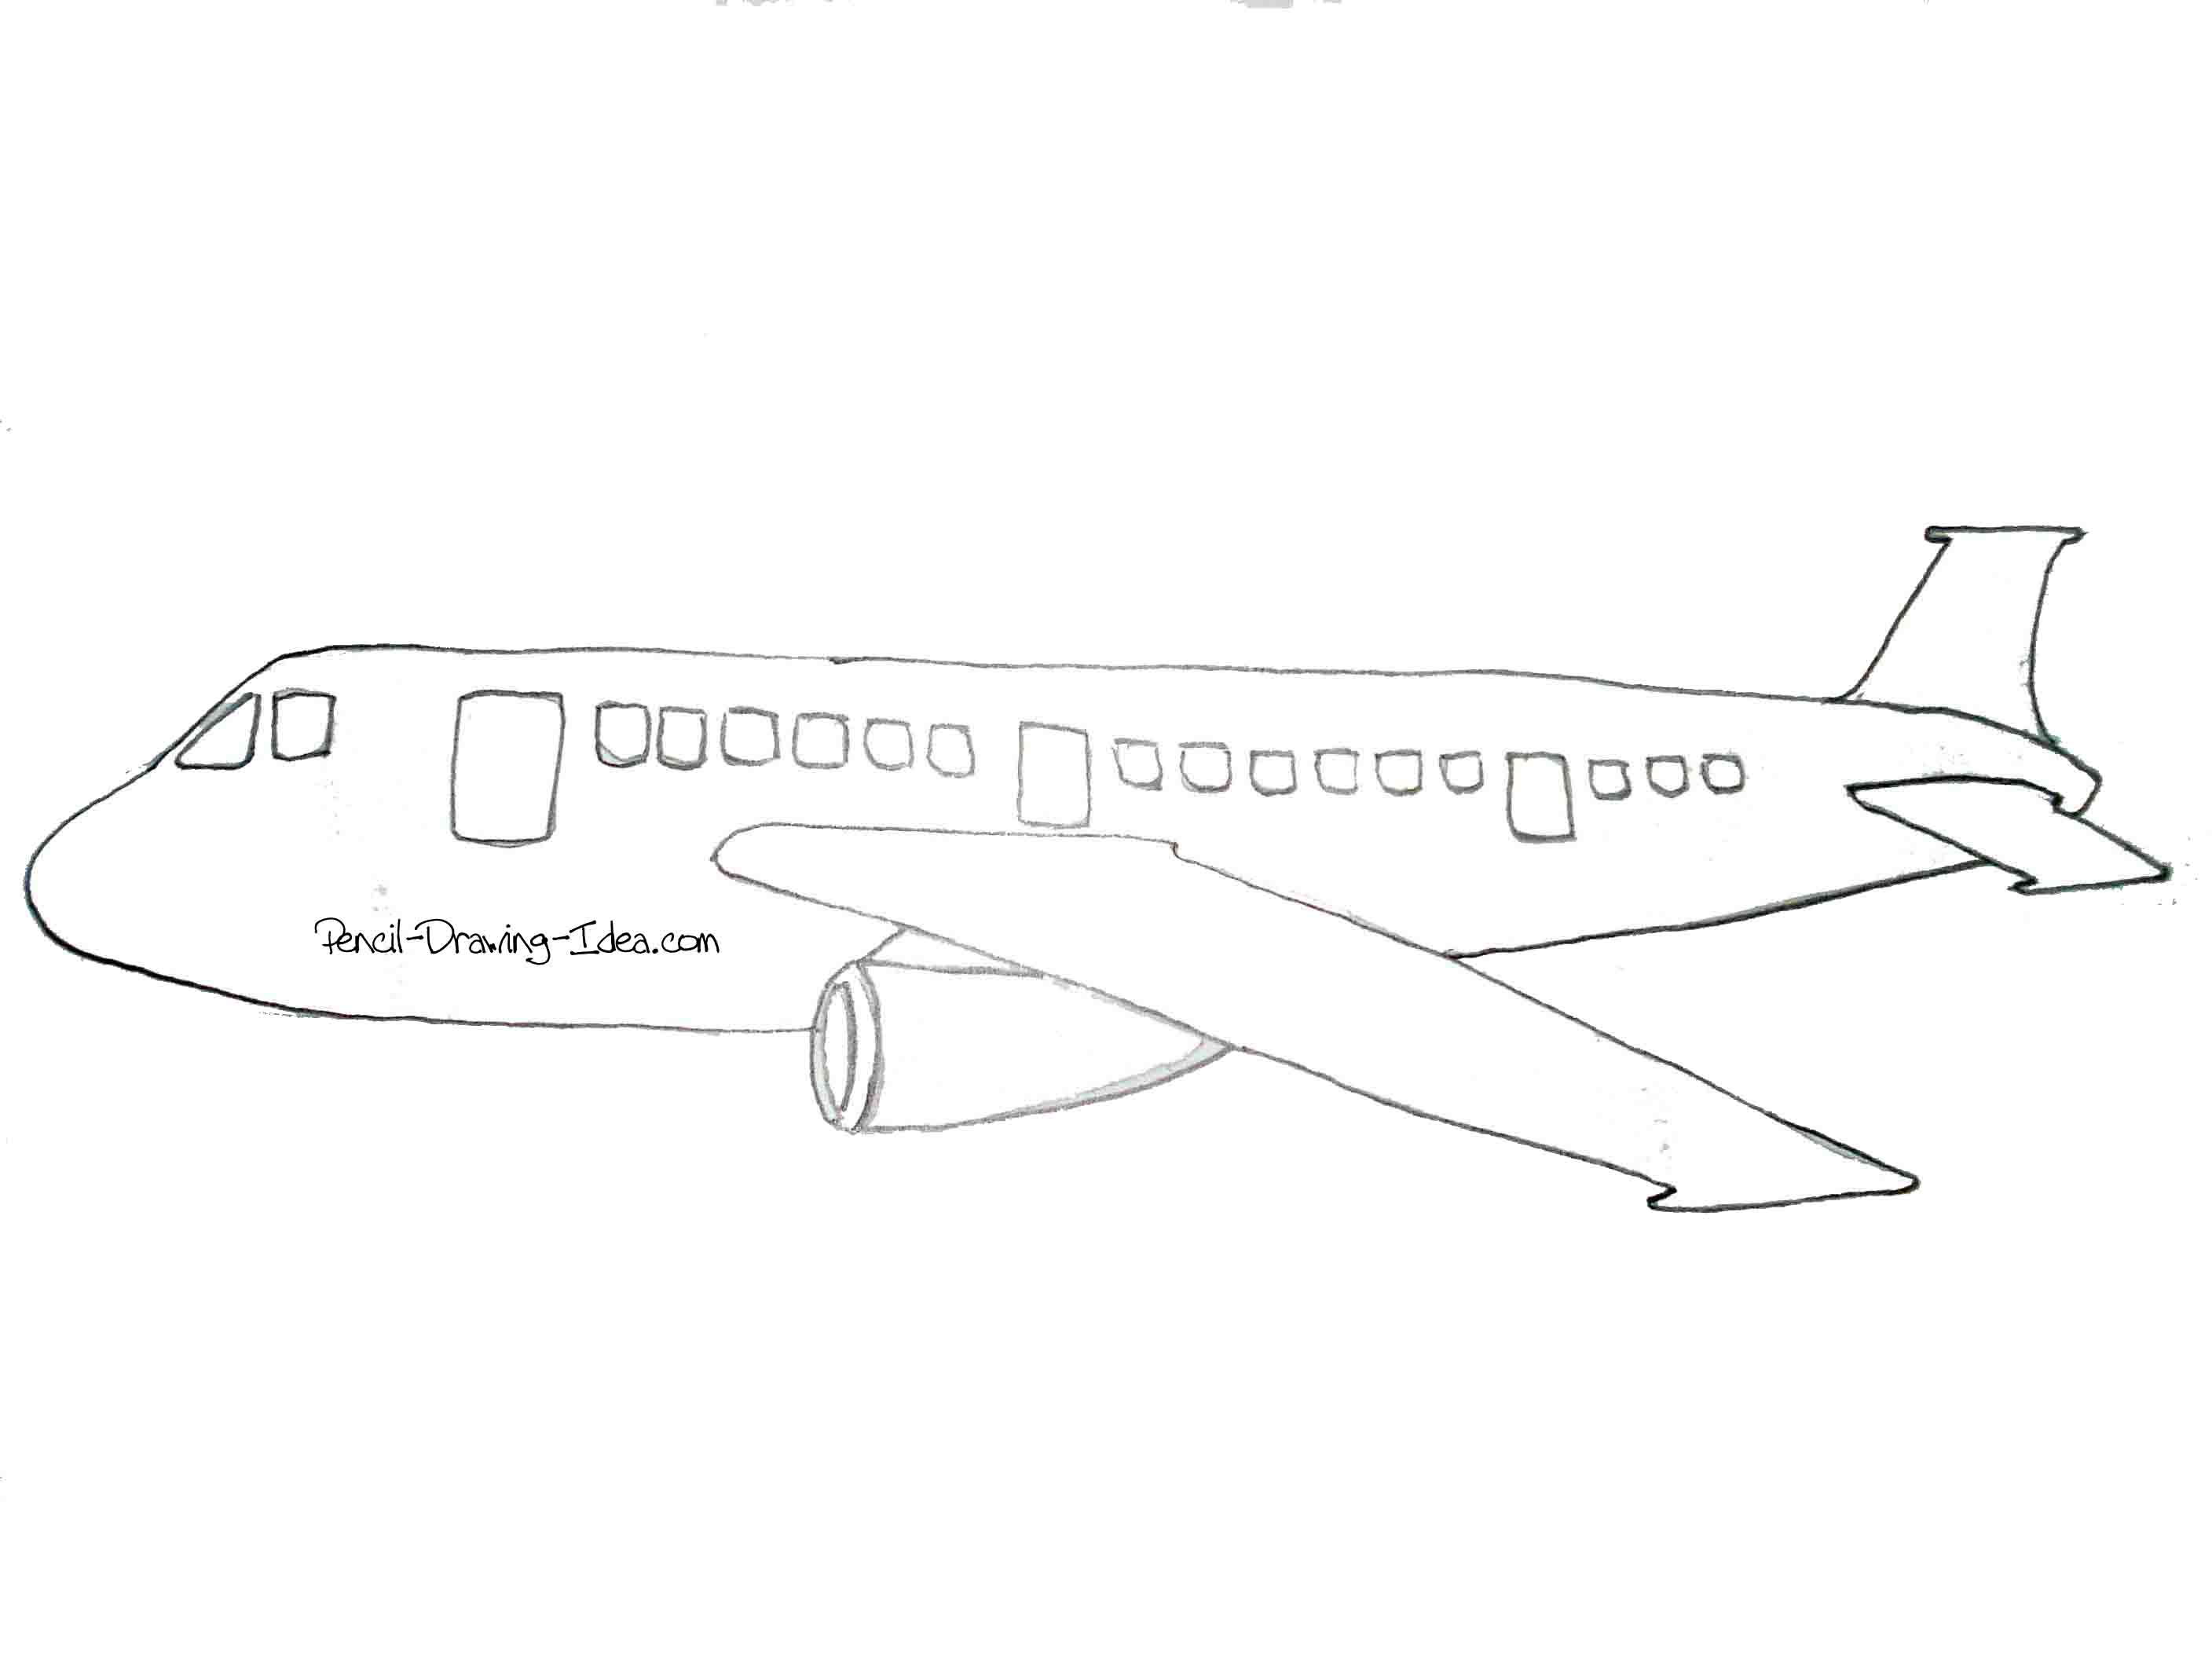 It's just a photo of Impertinent Easy Airplane Drawing